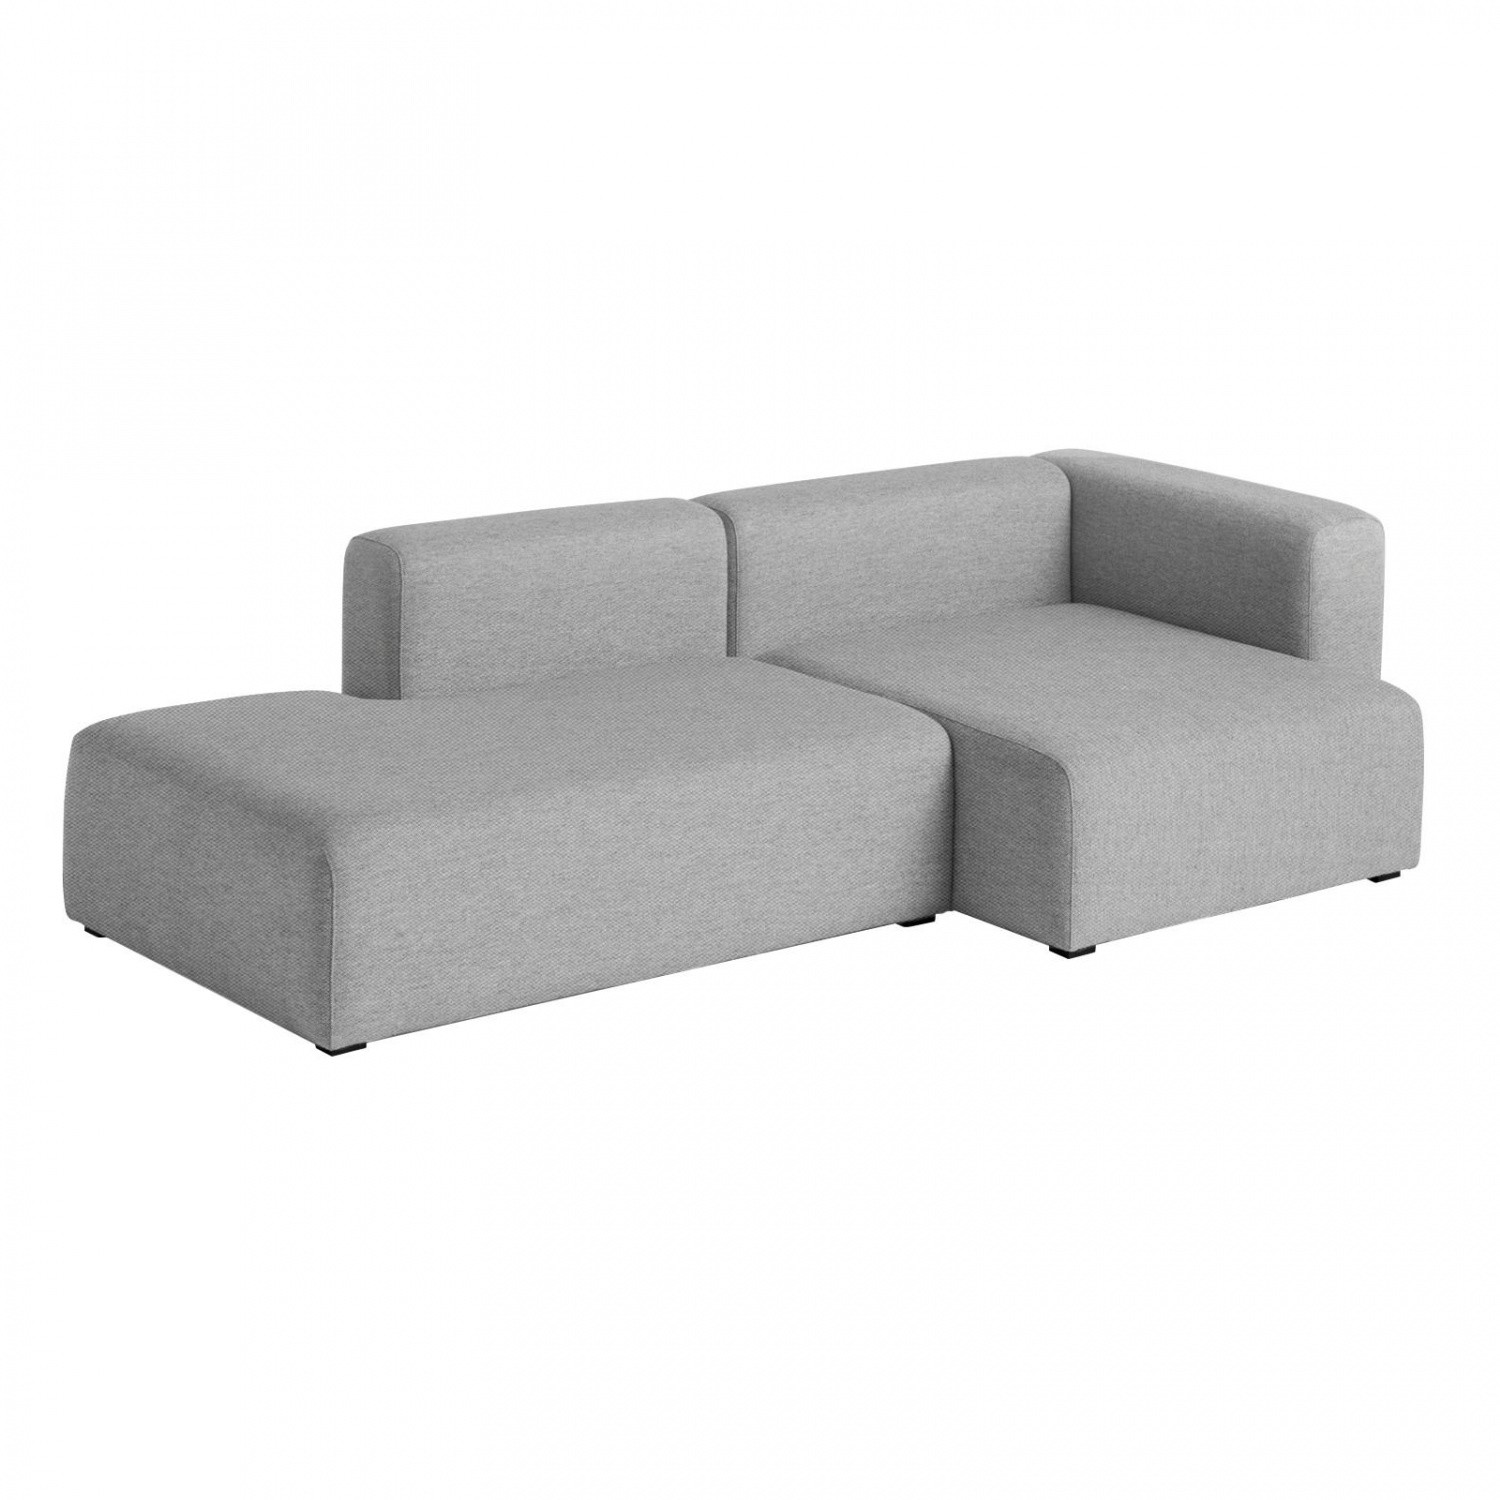 Hay Mags 2 5 Seater Sofa 246x127 5cm Ambientedirect